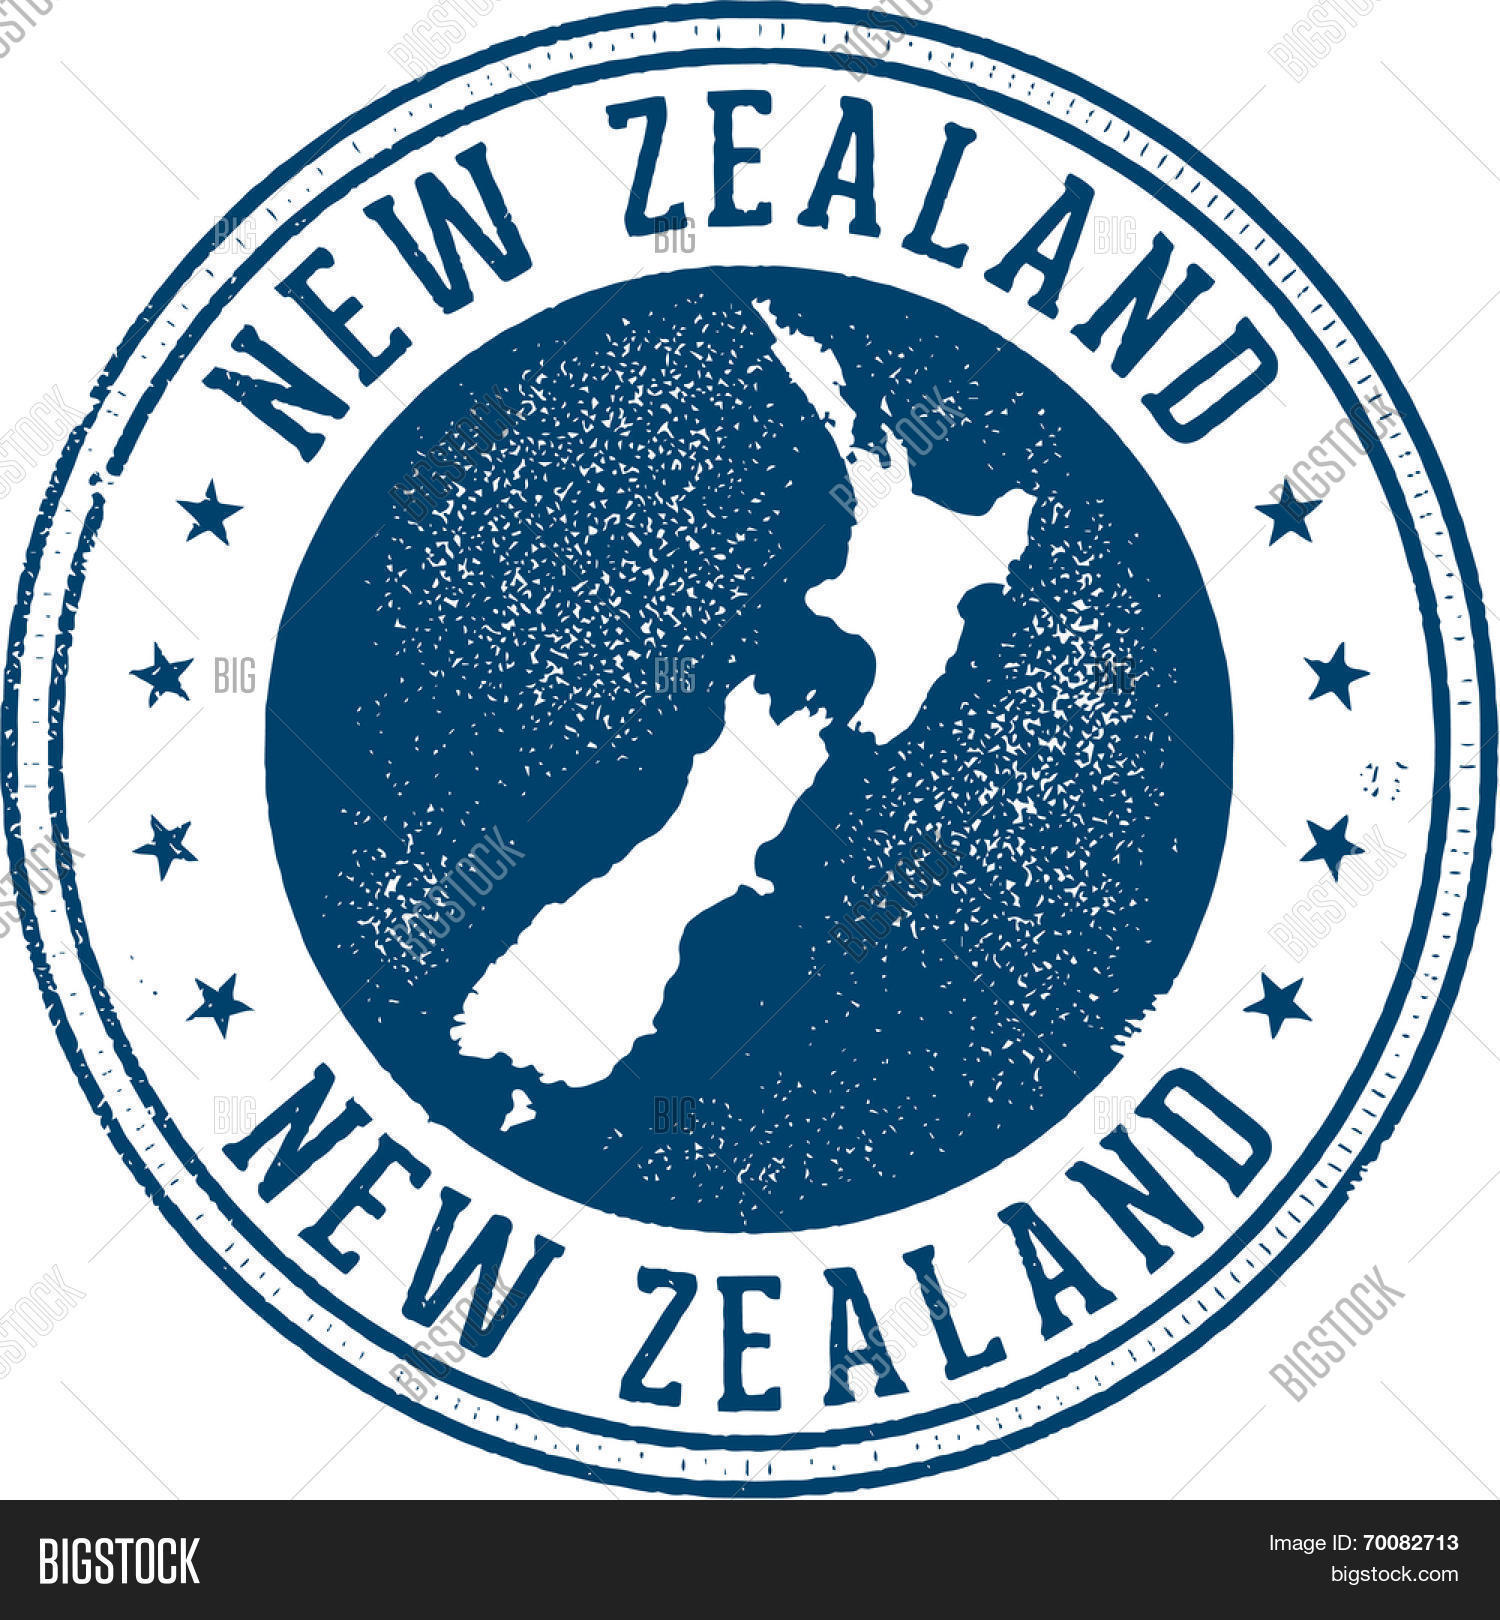 New Zealand Country Vector & Photo (Free Trial)